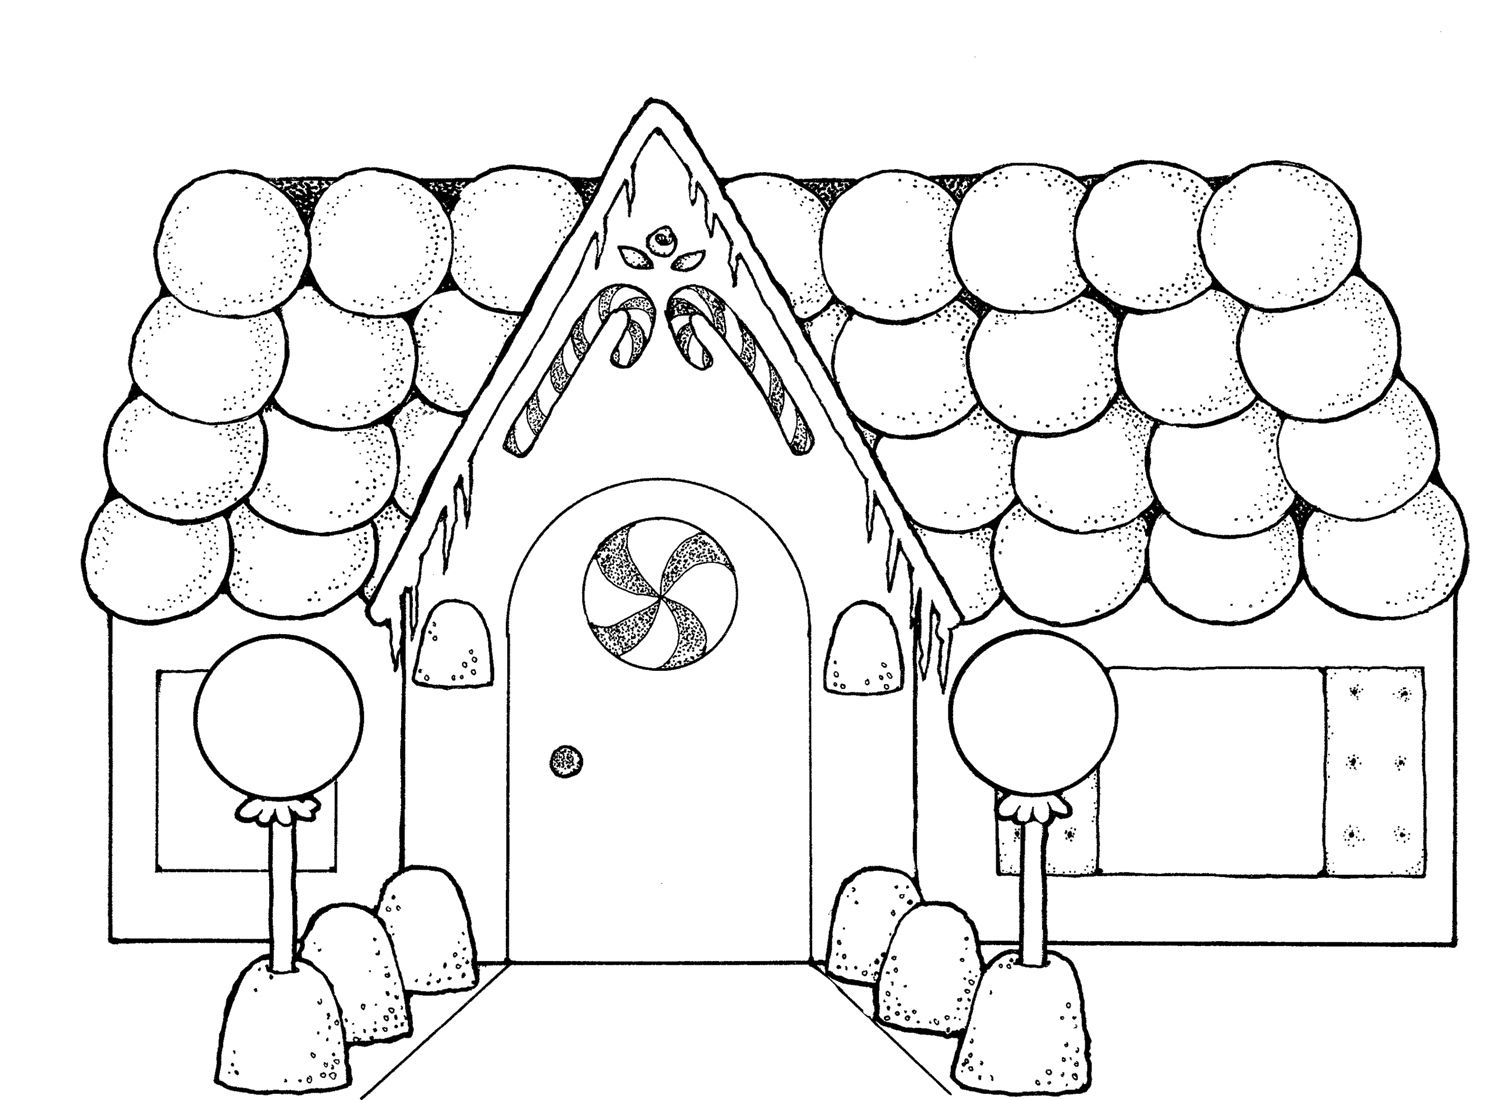 cute gingerbread houses coloring page - Gingerbread House Coloring Page